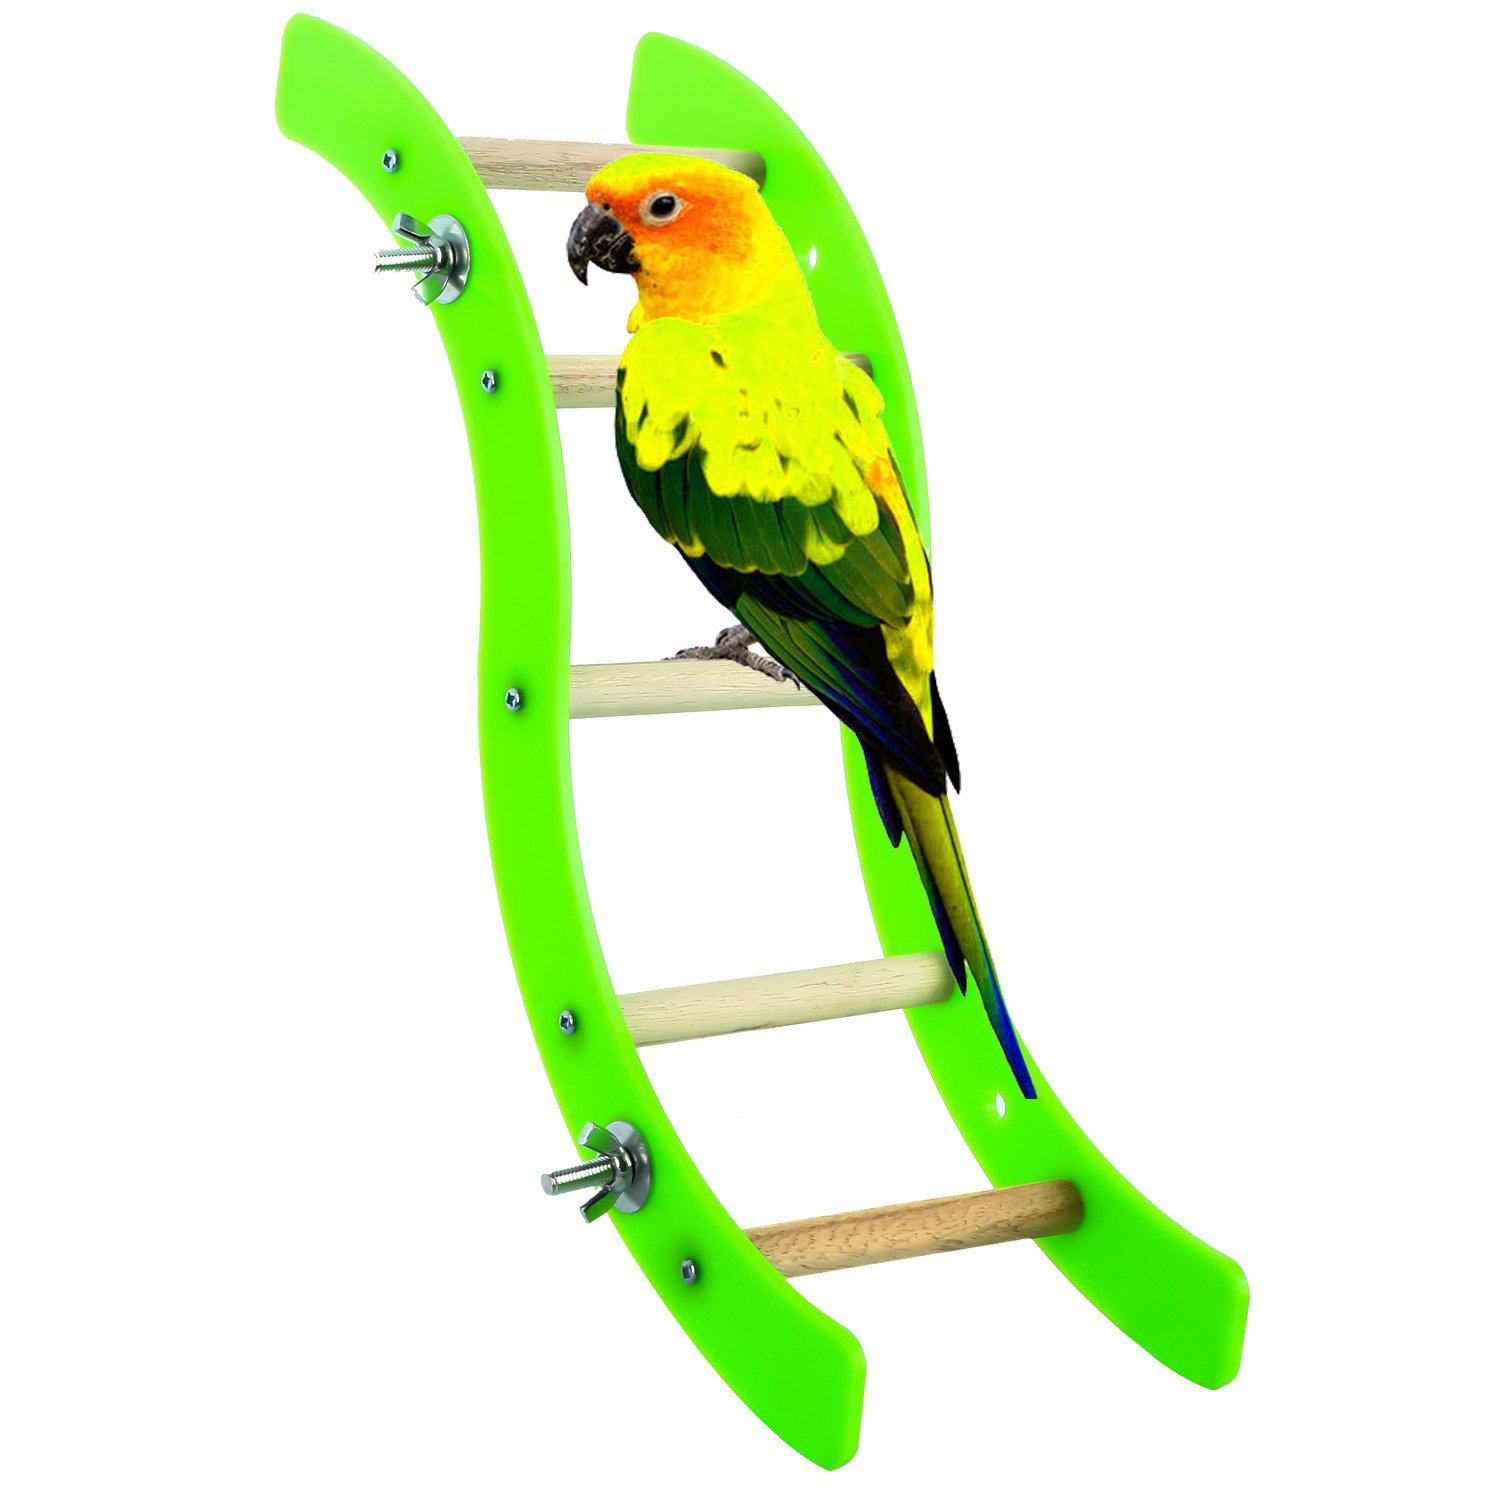 Jusney Parrot Cage Toy, Bird Wave Ladder, Stand Crawling Ladder, Parrot Perch Toy for Small and medium Animals Hamster Rabbit Chinchilla Parrot Bird